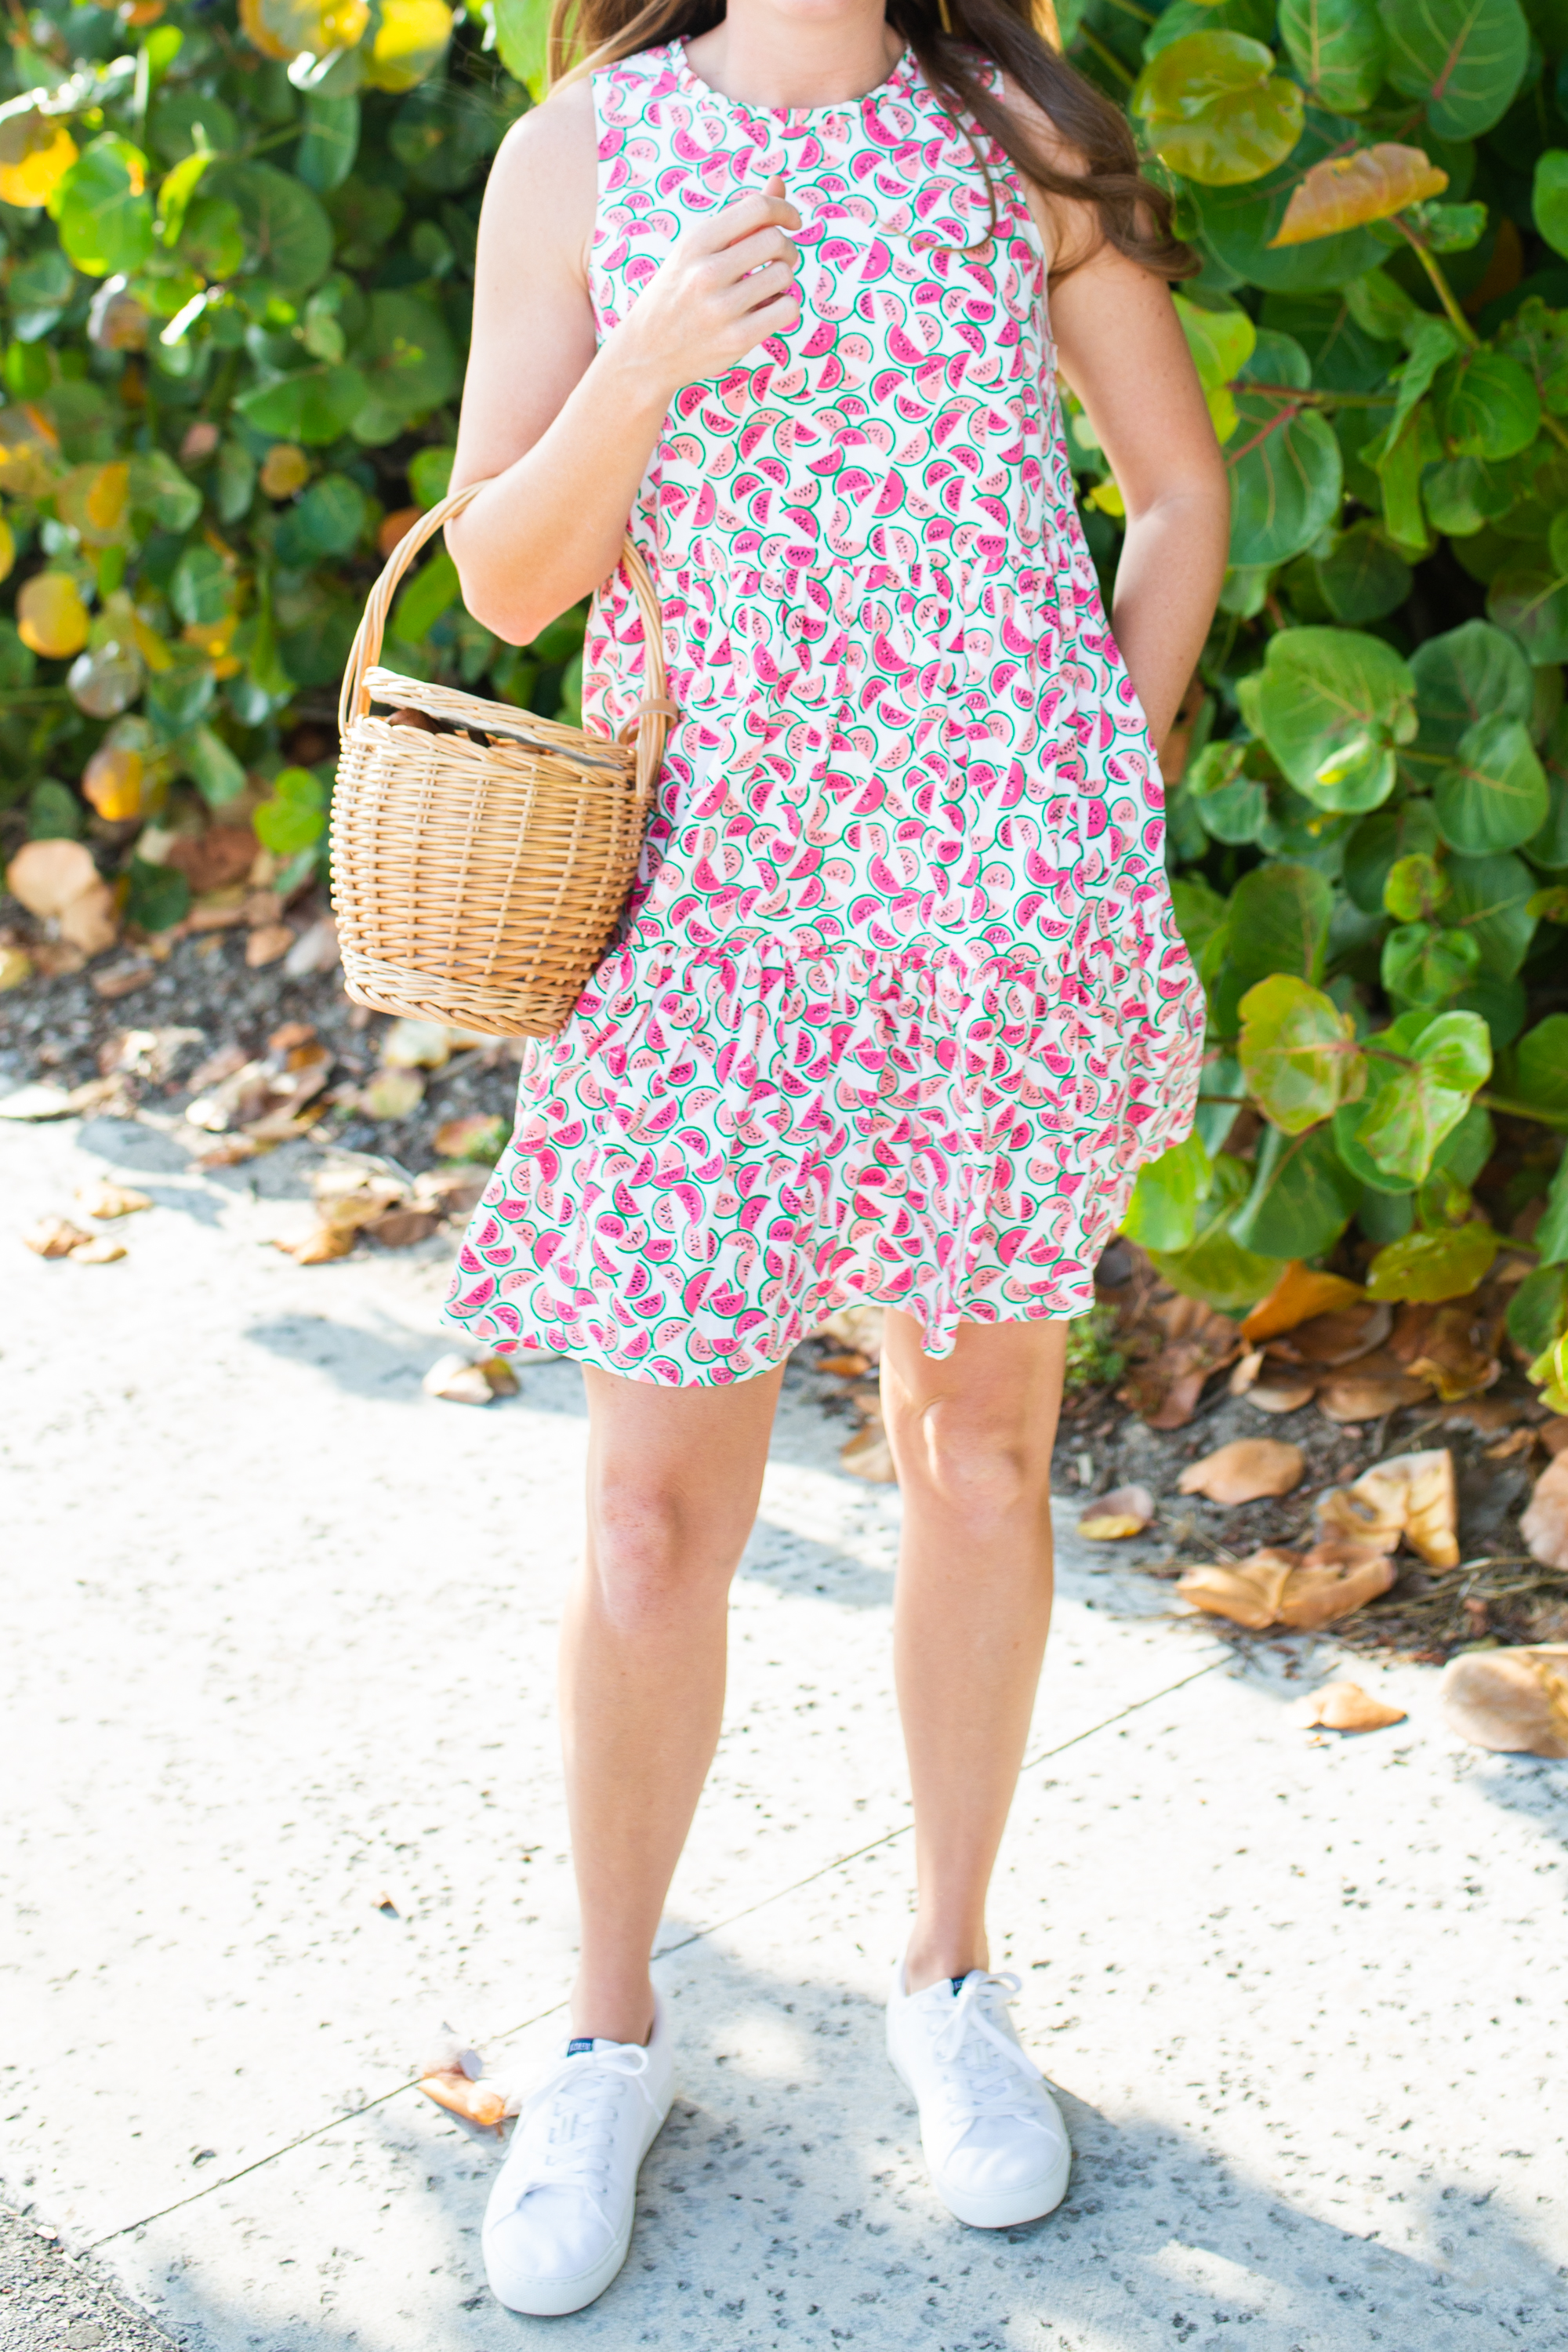 woman in outdoors wearing Citrus Print Pieces dress and white sneakers